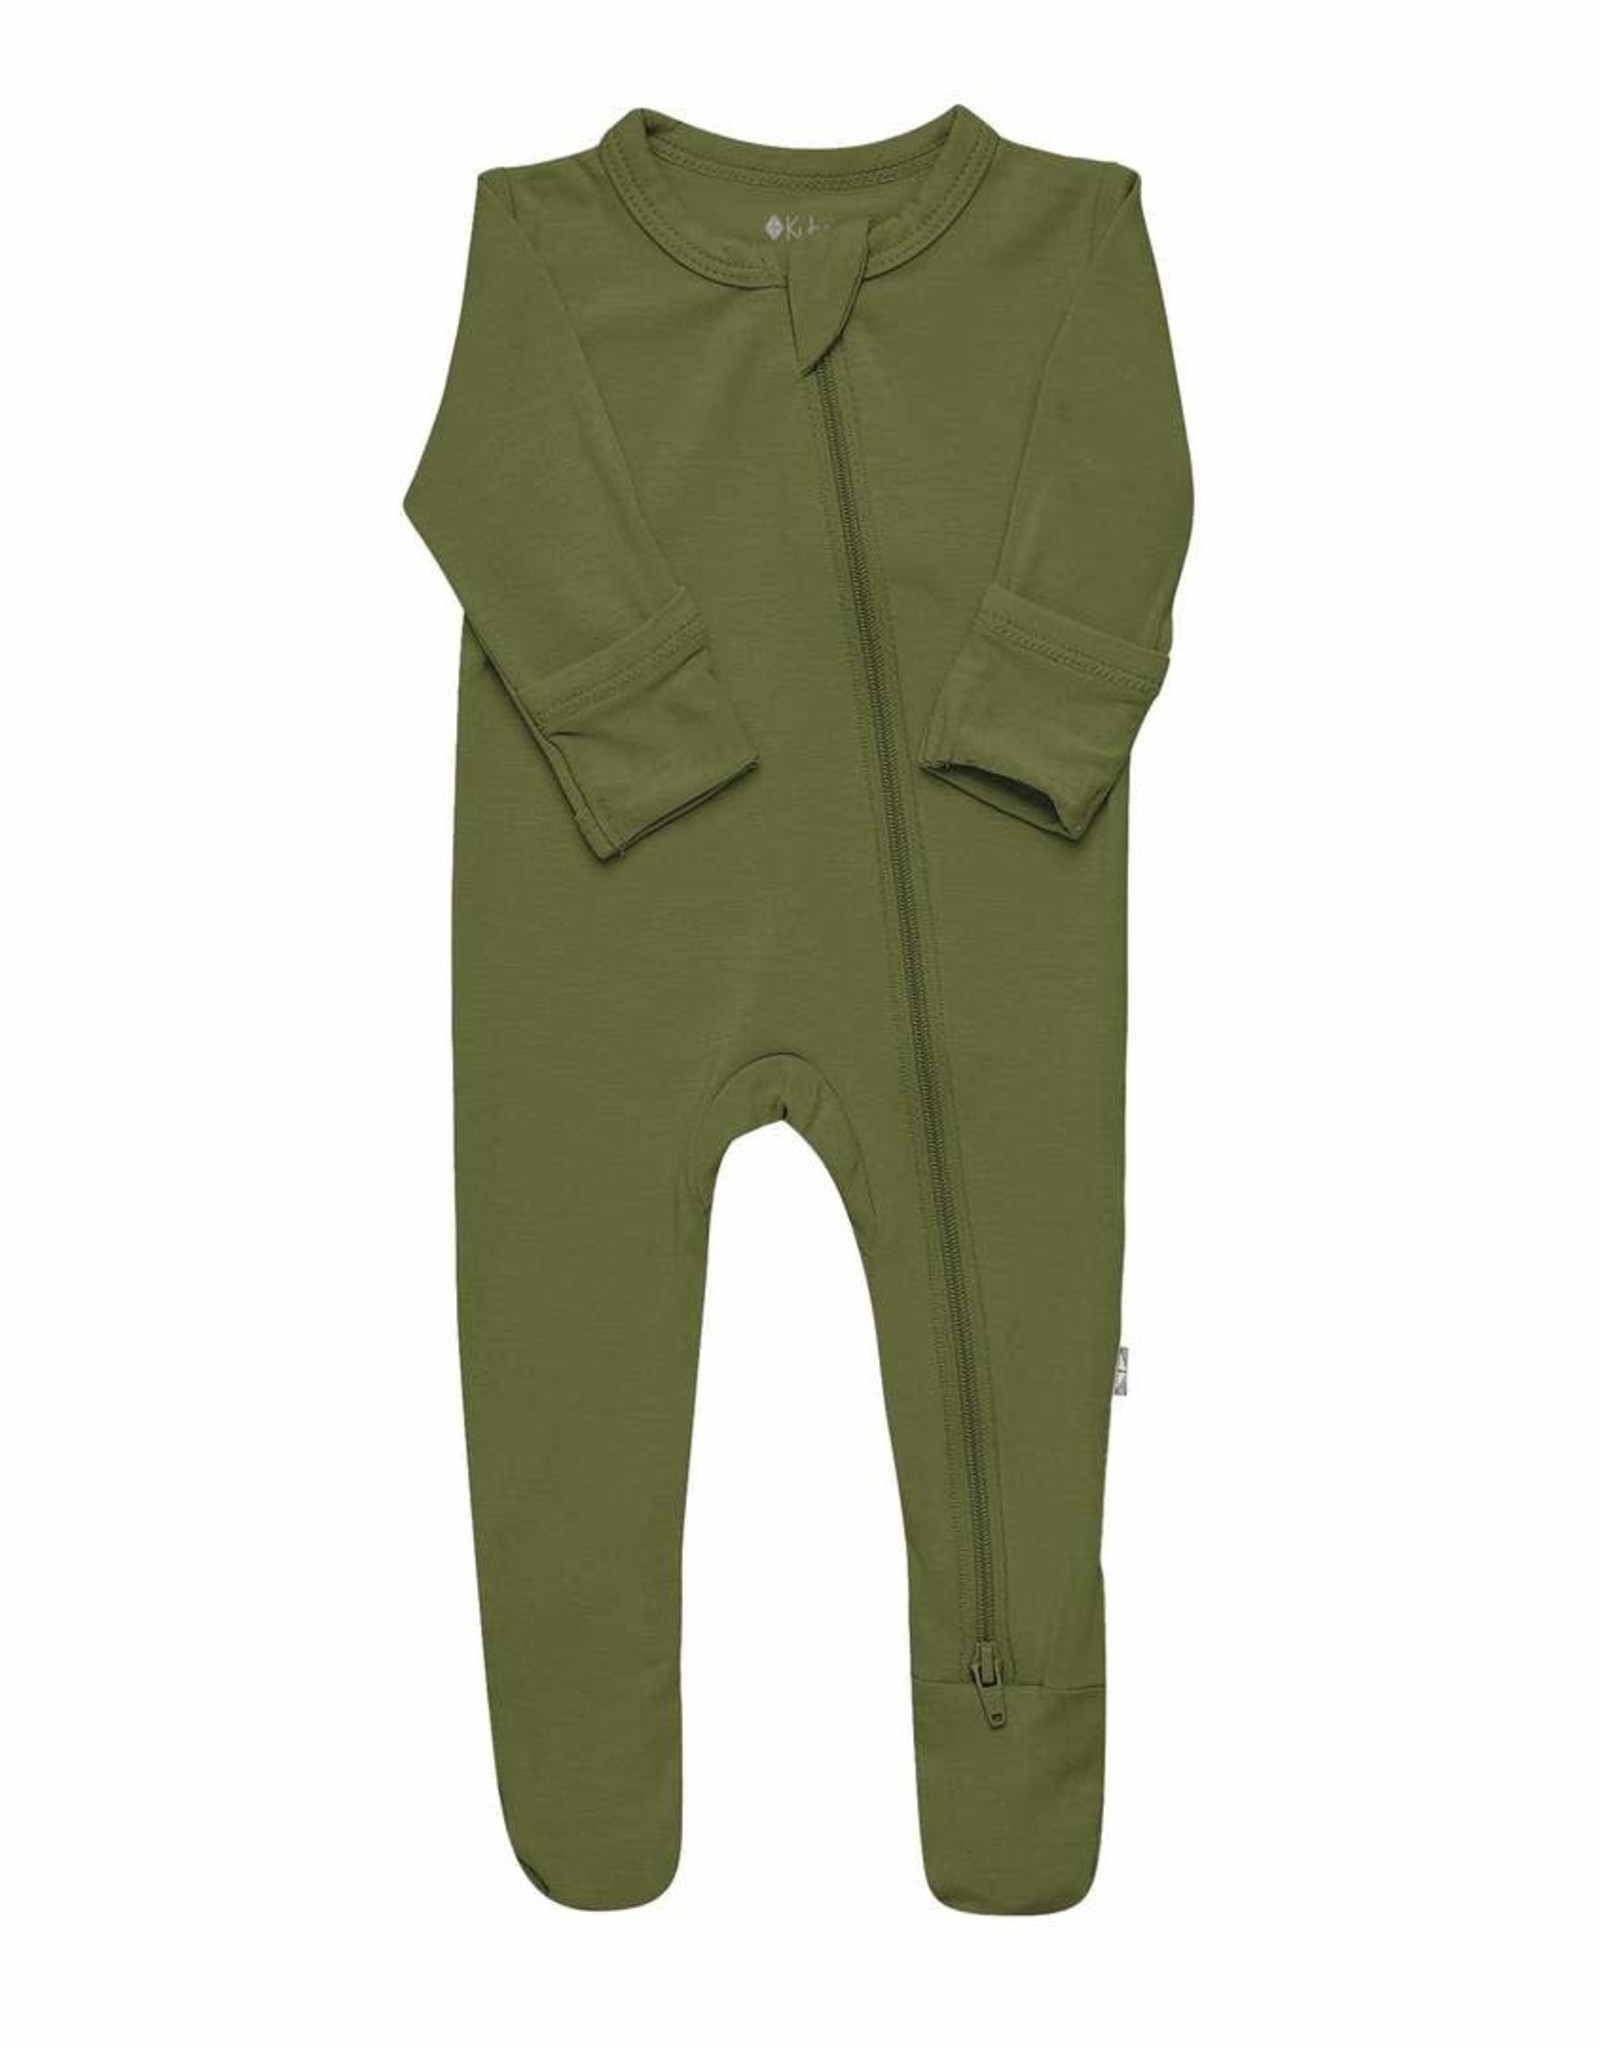 Kyte Baby zippered footie- olive